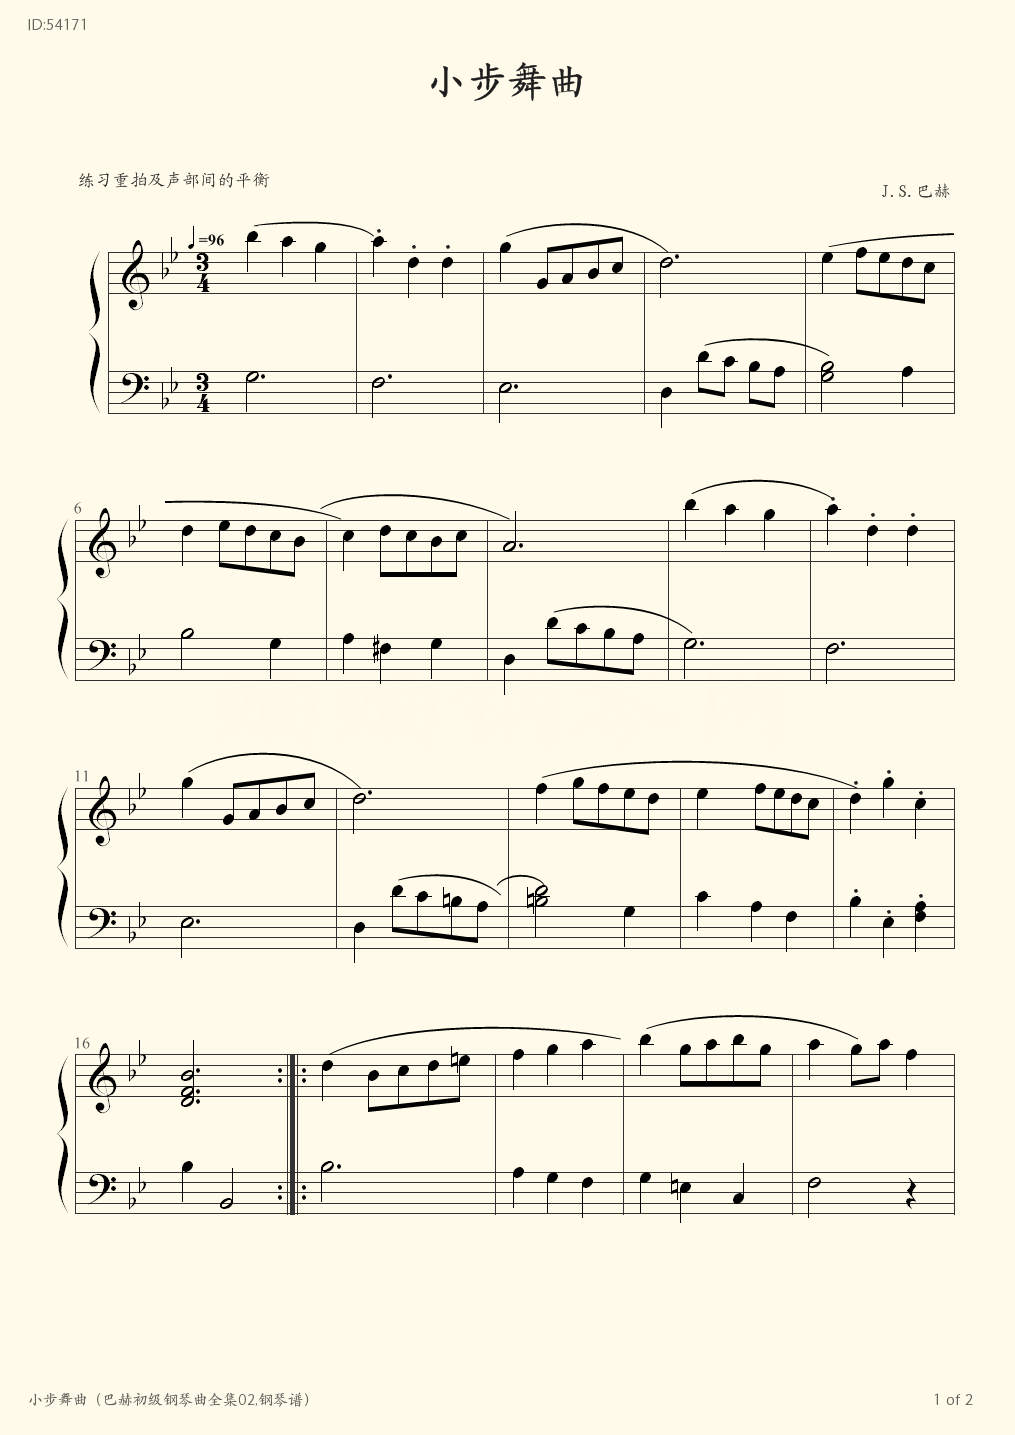 02  - Bach - first page